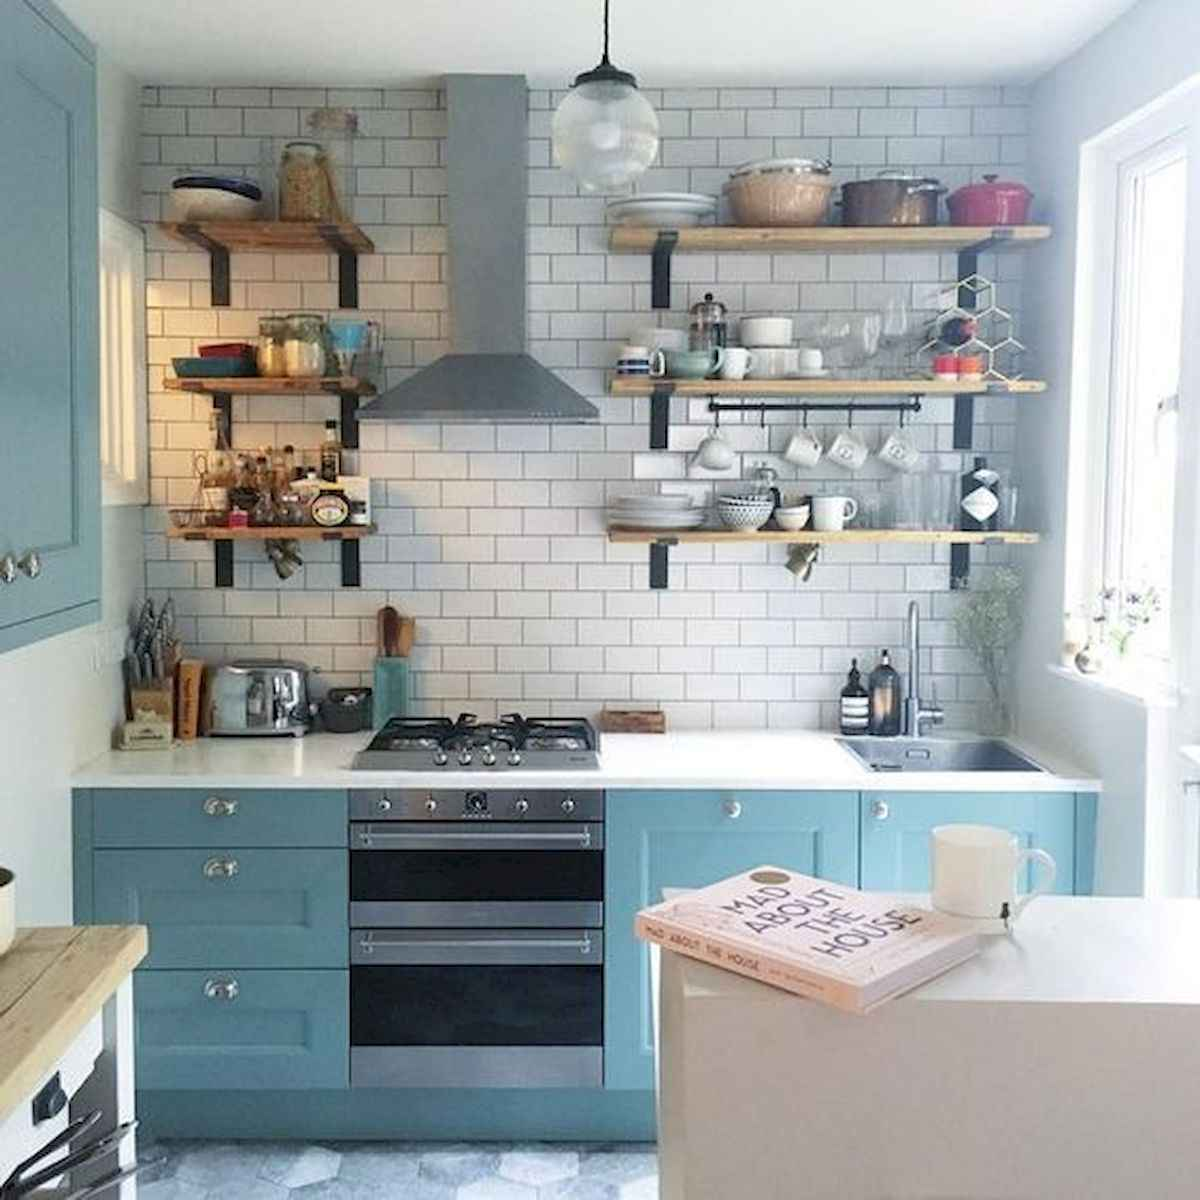 40+ Beautiful Studio Apartment Kitchen Decor Ideas And Remodel (6)